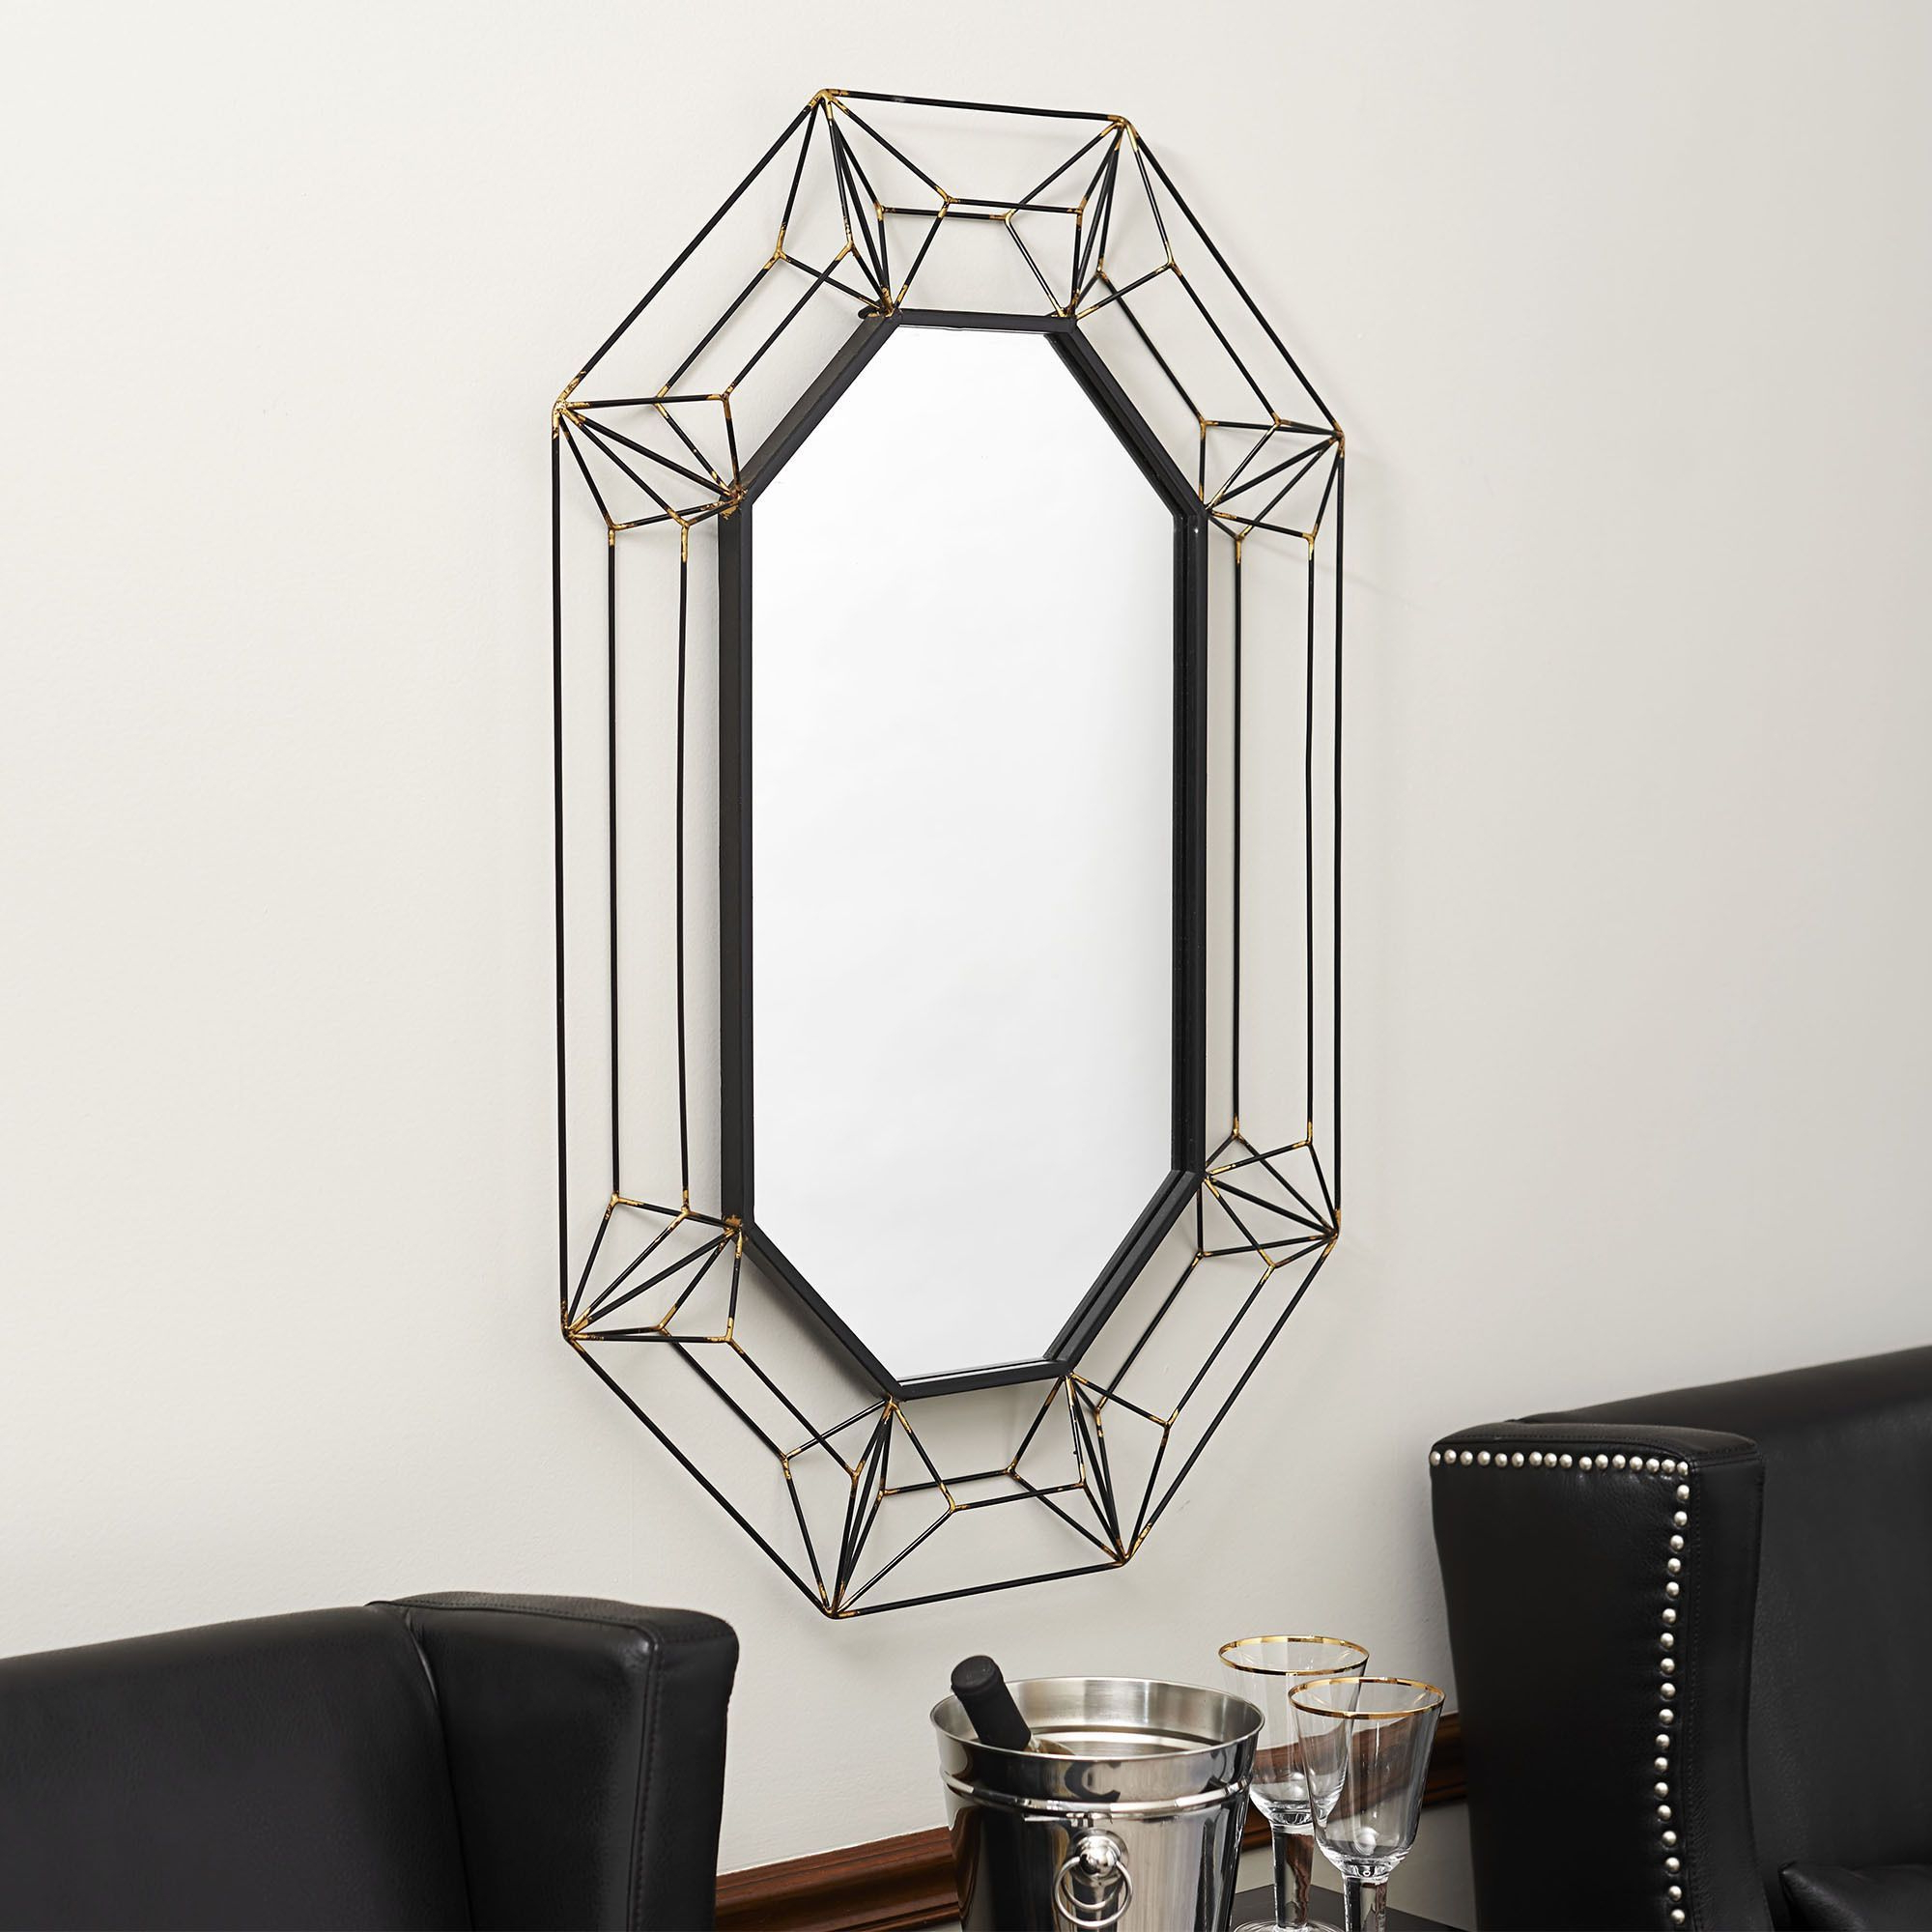 2019 Cheap Black Wall Mirrors Regarding Household Essentials Large Wire Frame Wall Mirror – Black/gold (View 3 of 20)